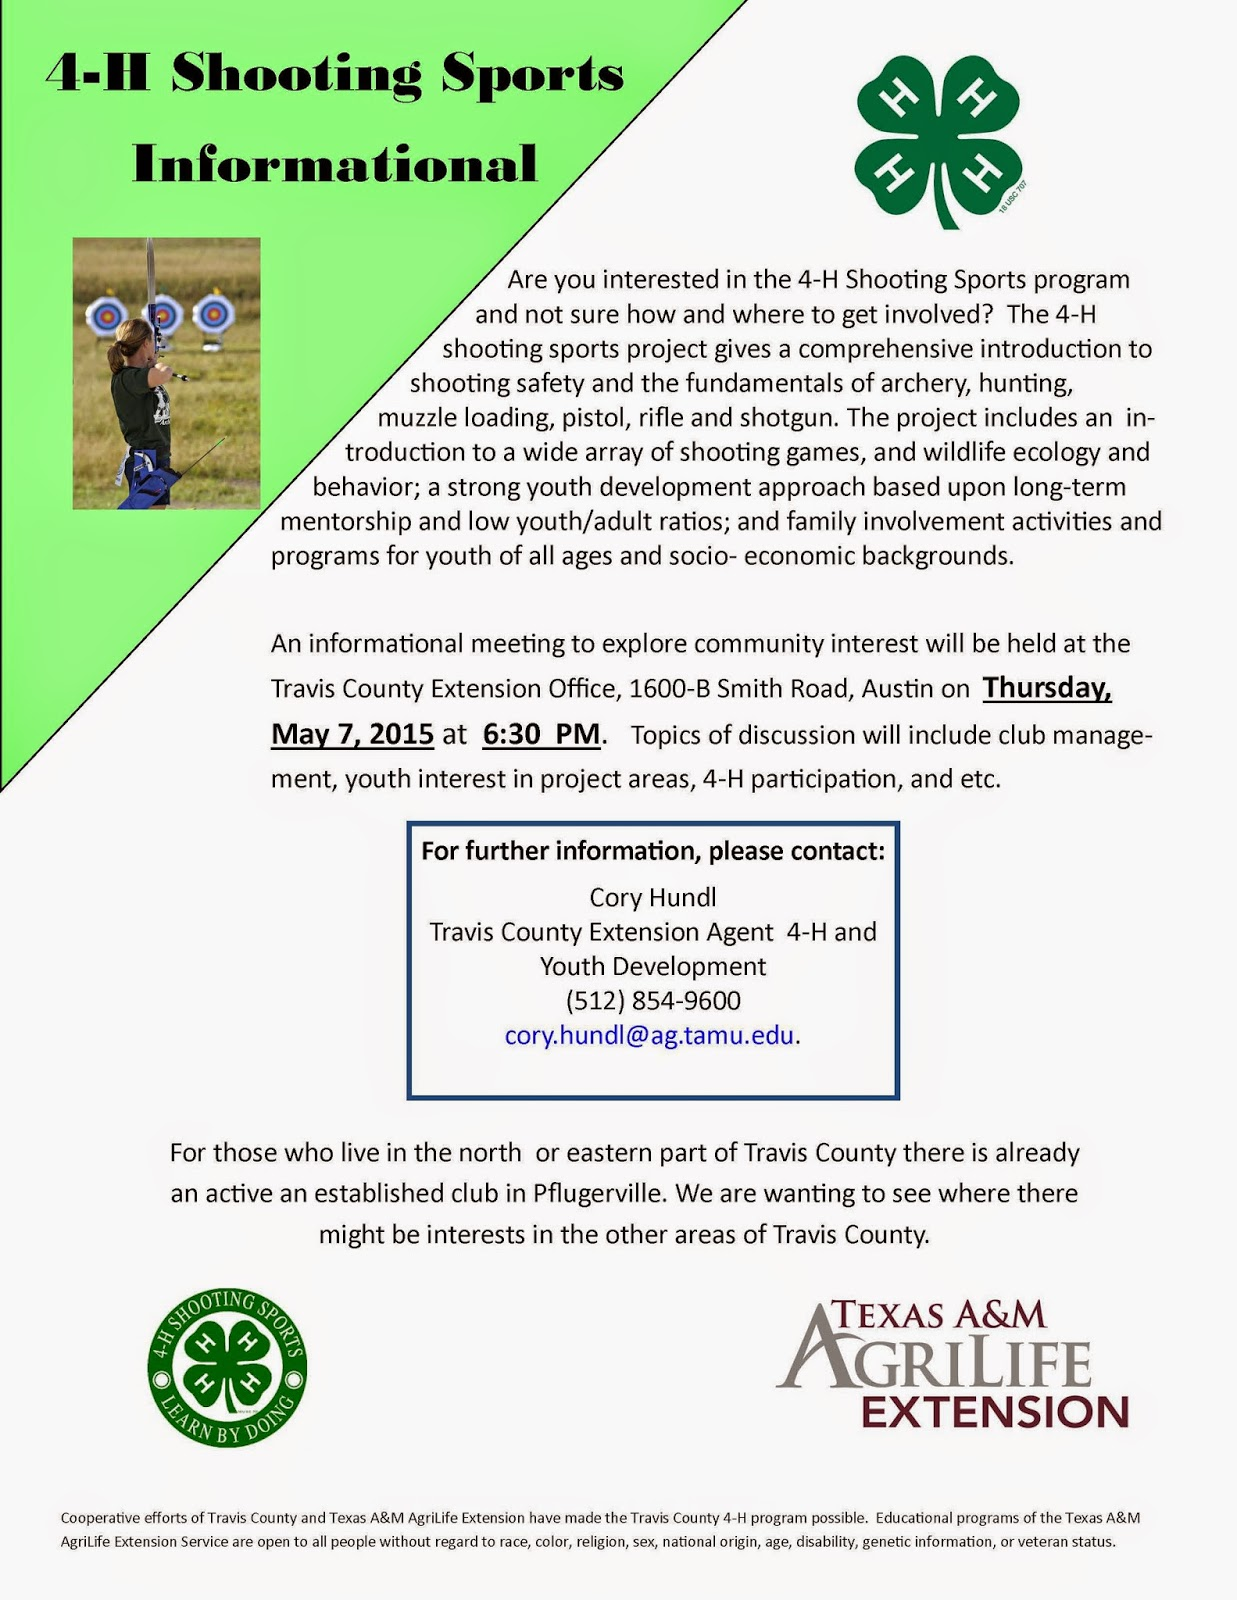 Travis County 4-H: 4-H Shooting Sports Informational - May 7th